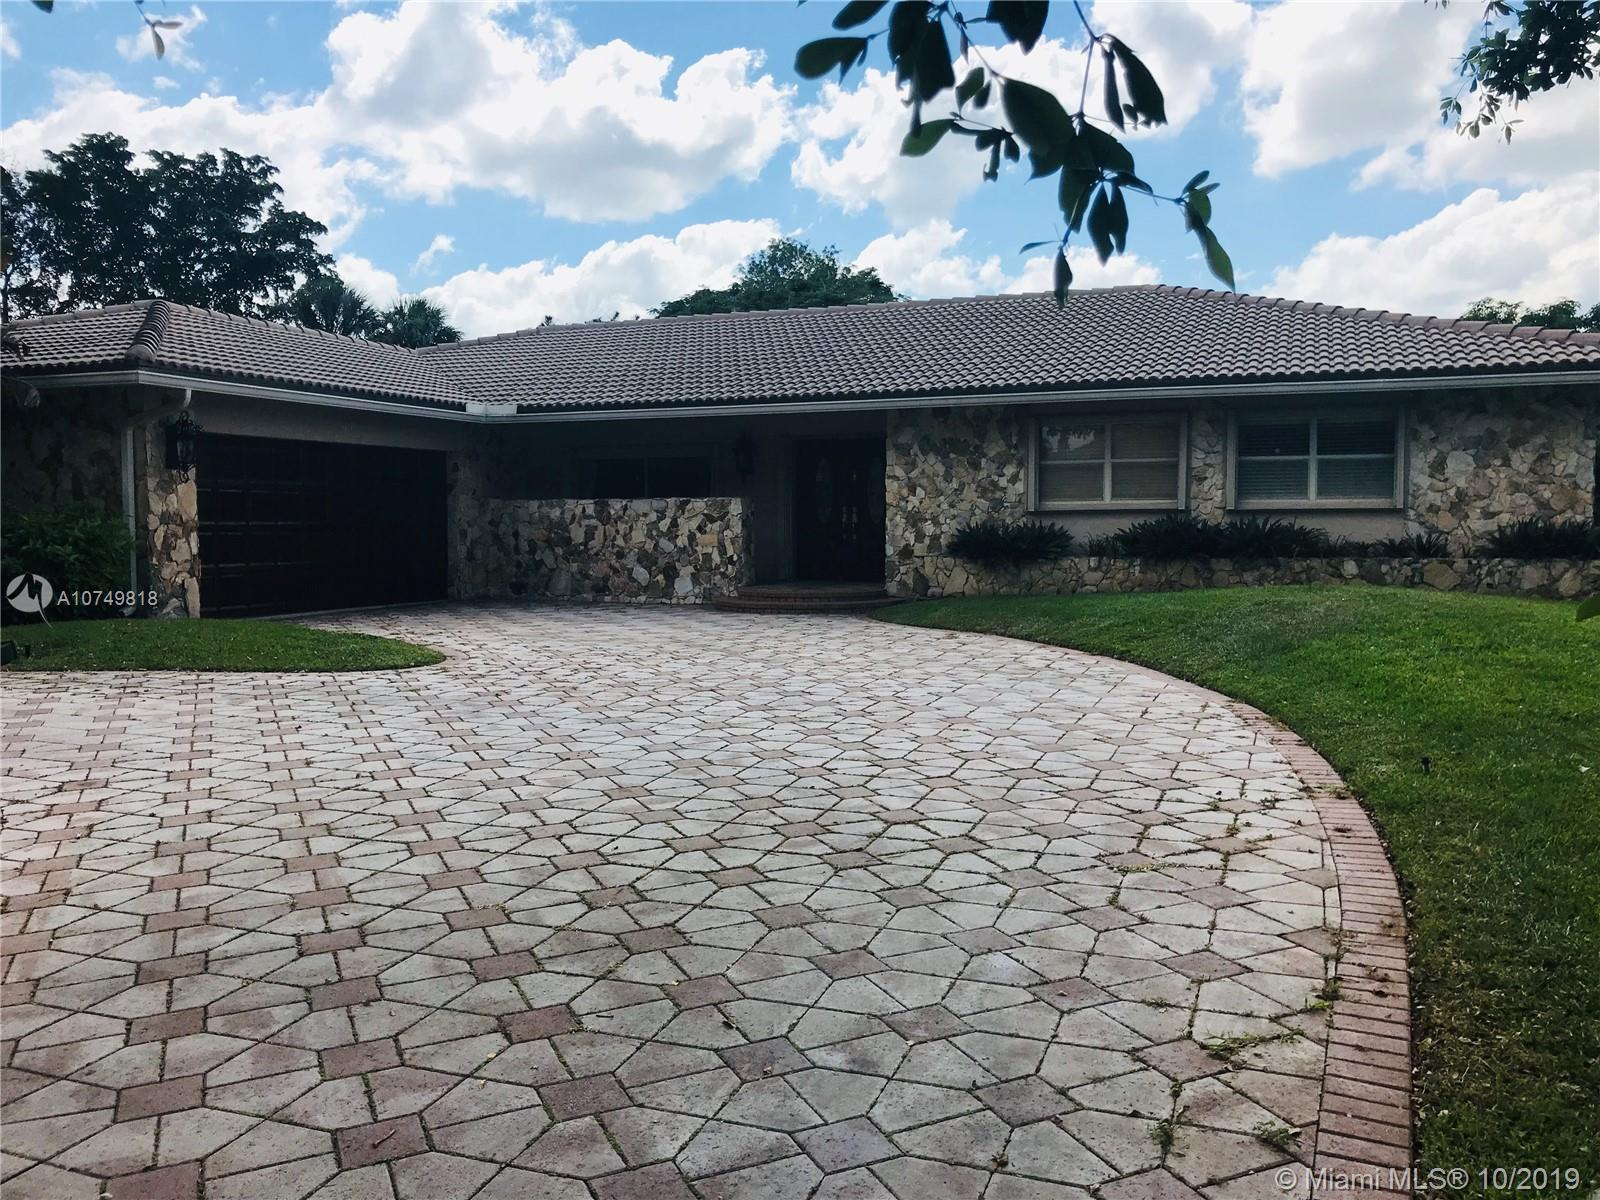 9982 NW 19th St, Coral Springs, FL 33071